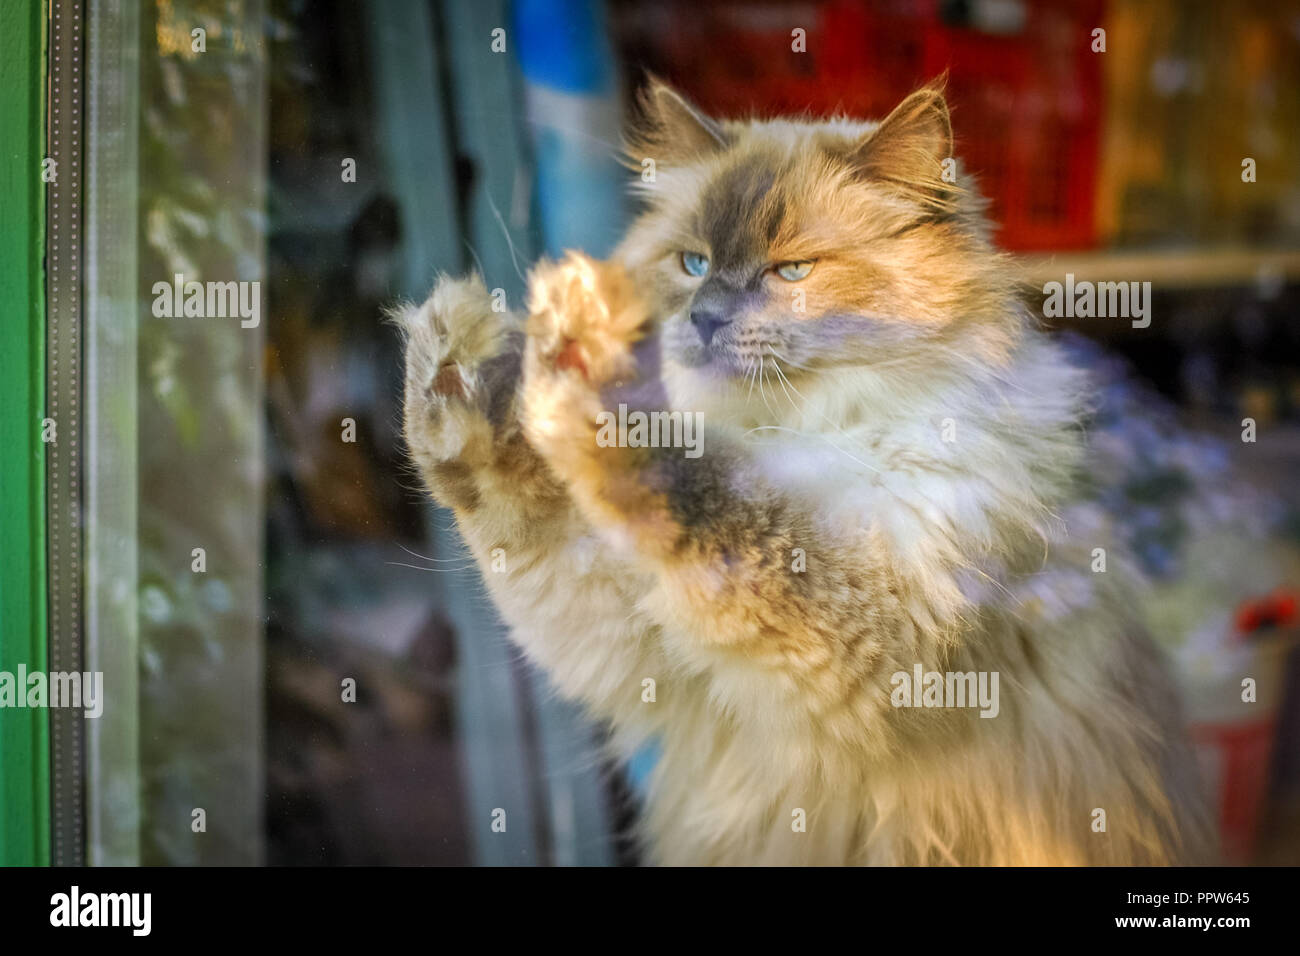 Ragdoll cat wants to go outside but doesn't know a way through the window. The Radgoll is known for its docile temperament and affectionate nature - Stock Image